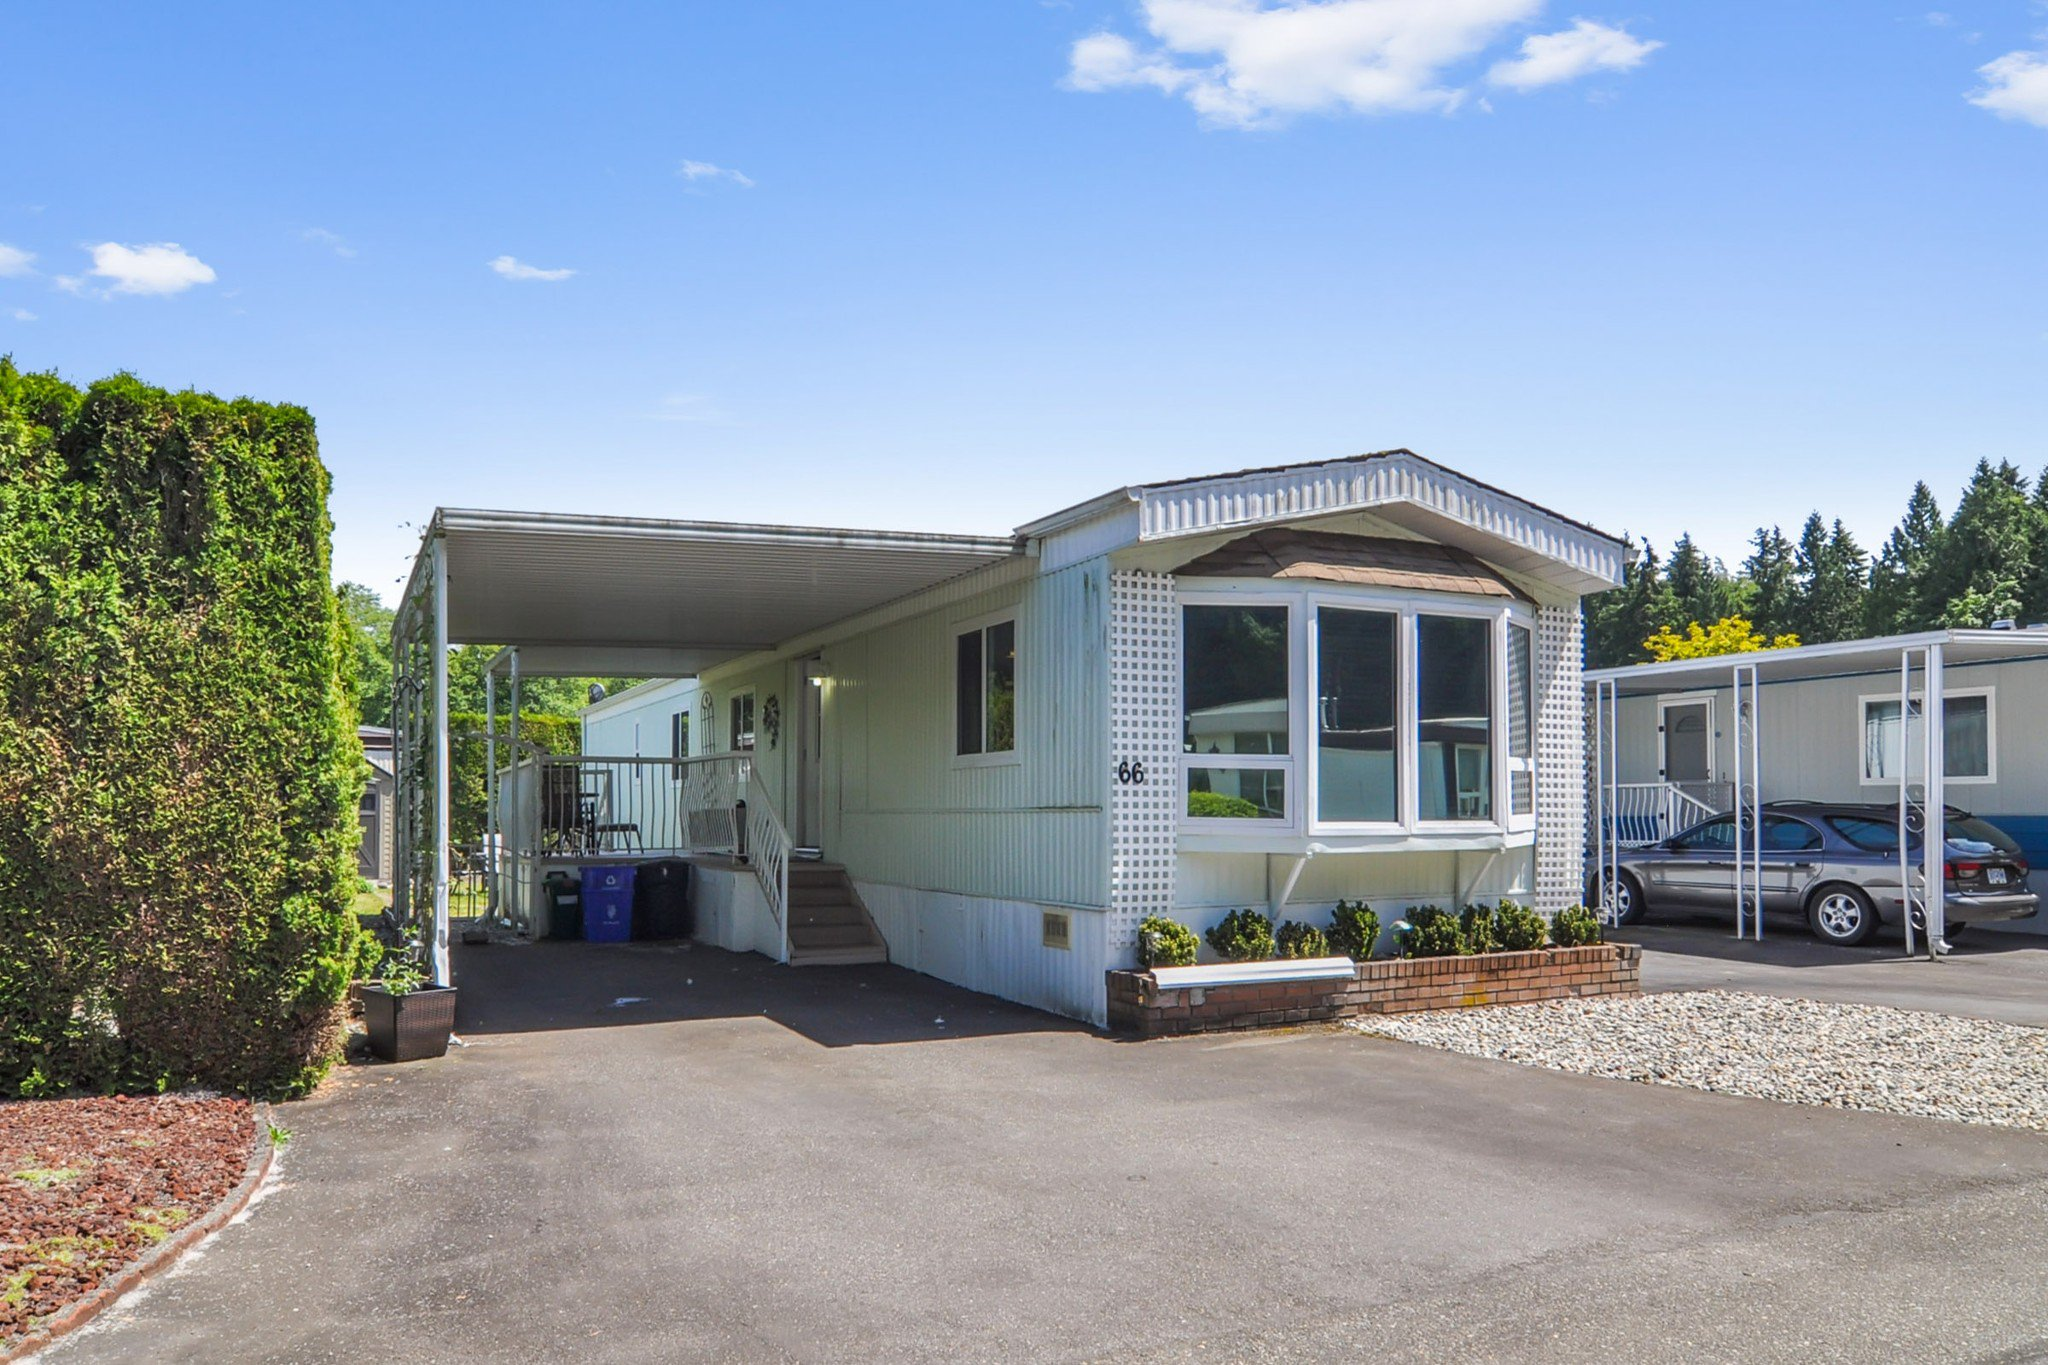 "Main Photo: 66 2270 196 Street in Langley: Brookswood Langley Manufactured Home for sale in ""Pineridge Park"" : MLS®# R2459842"